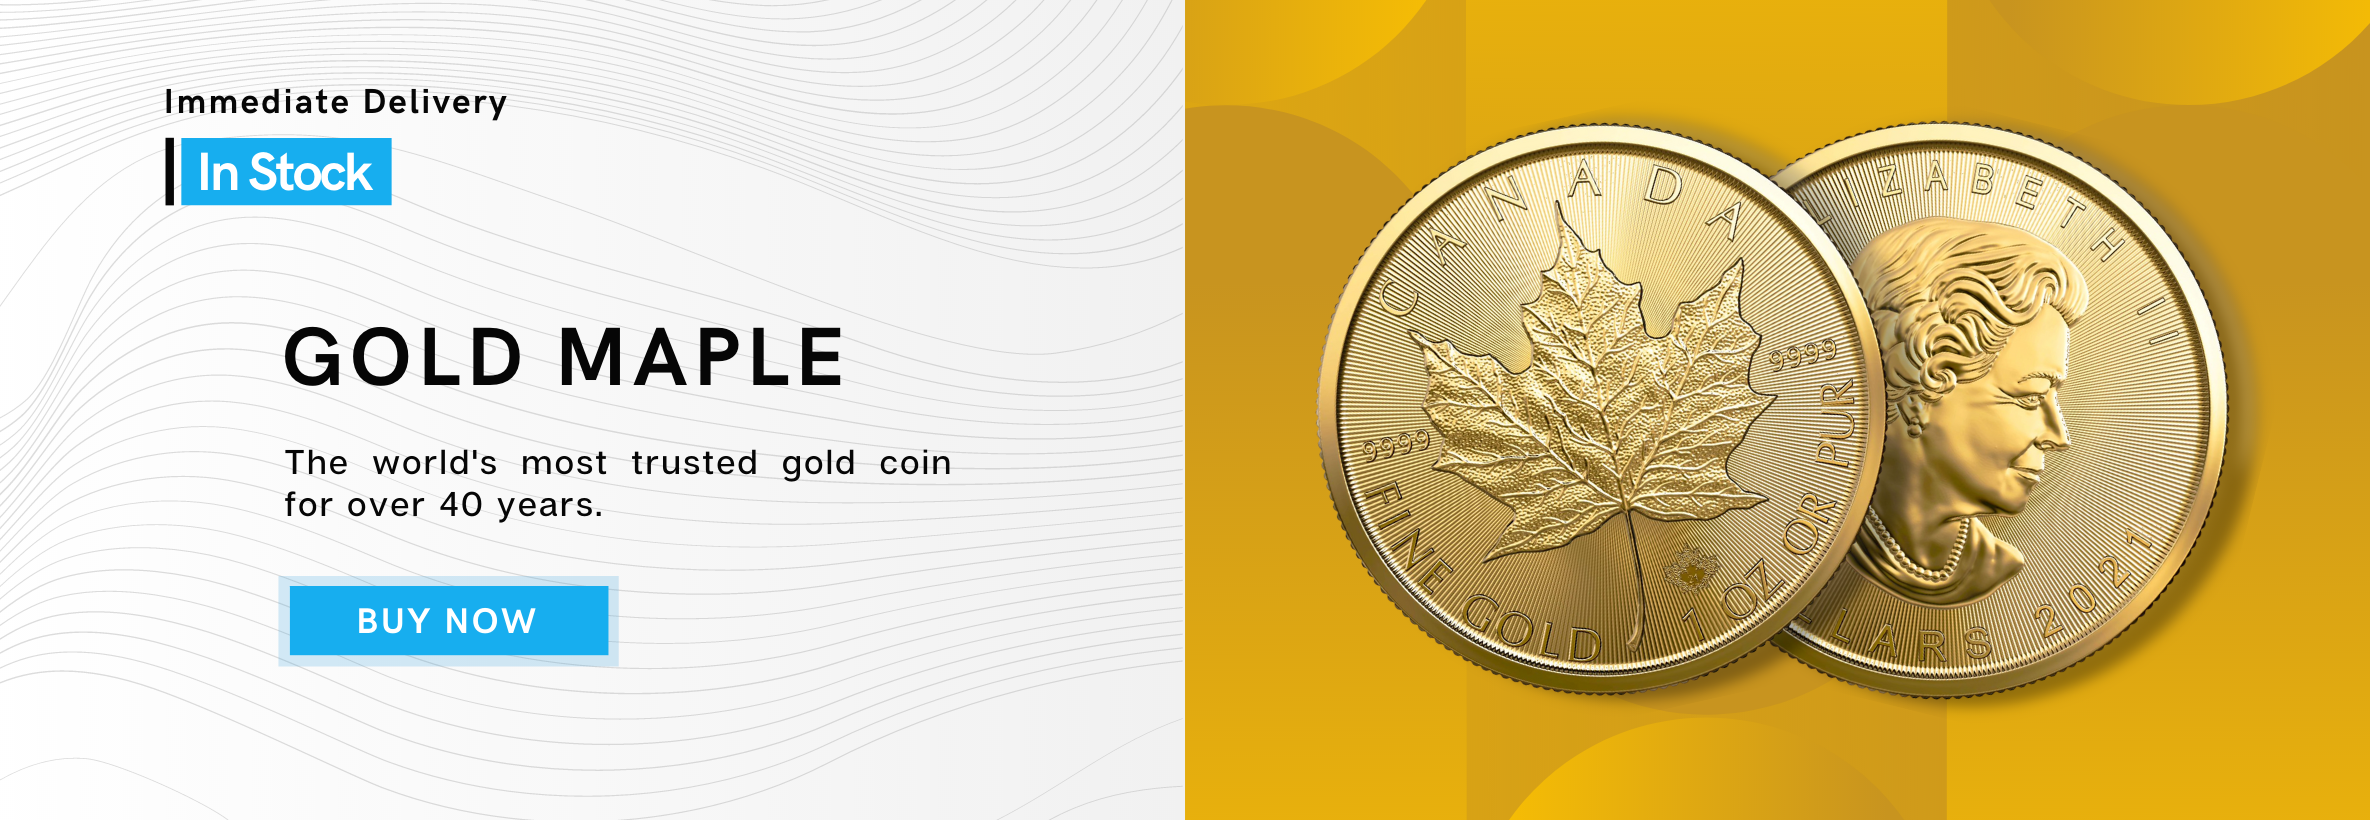 Gold Maple Leaf 1 oz Gold Coin 2021